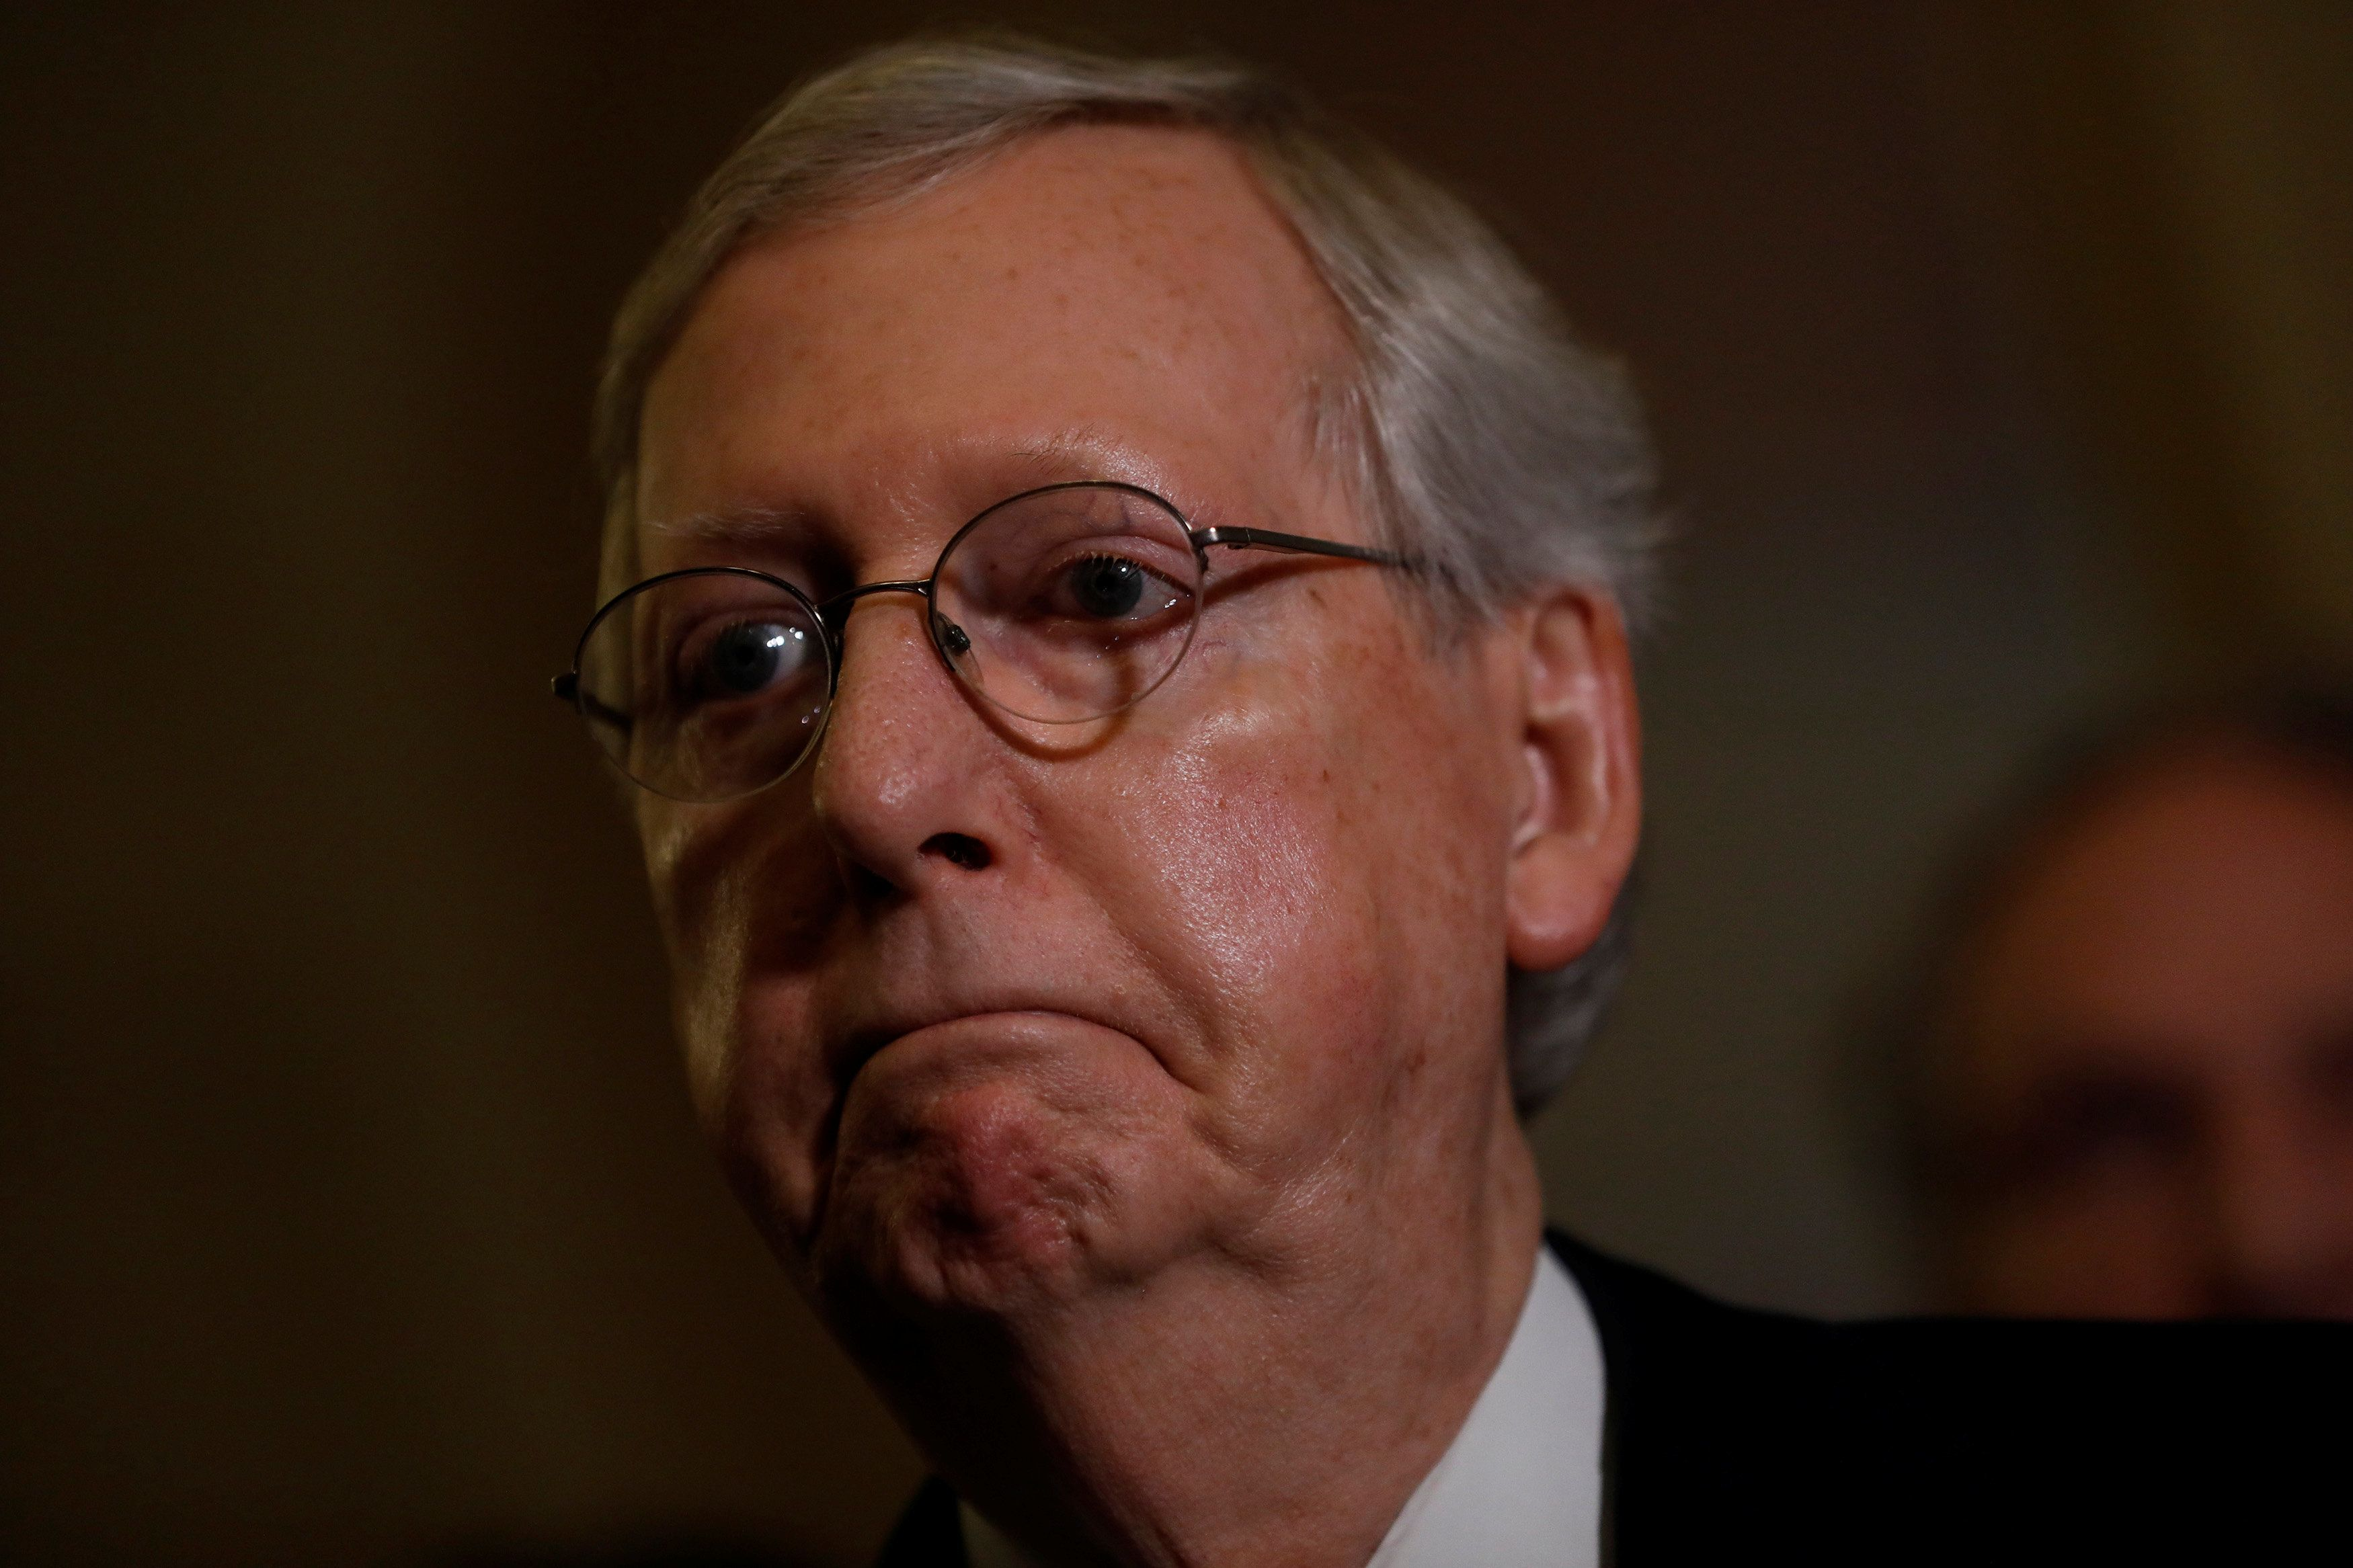 Senate Republicans Don't Know What Health Care Bill They're About To Vote For. That's